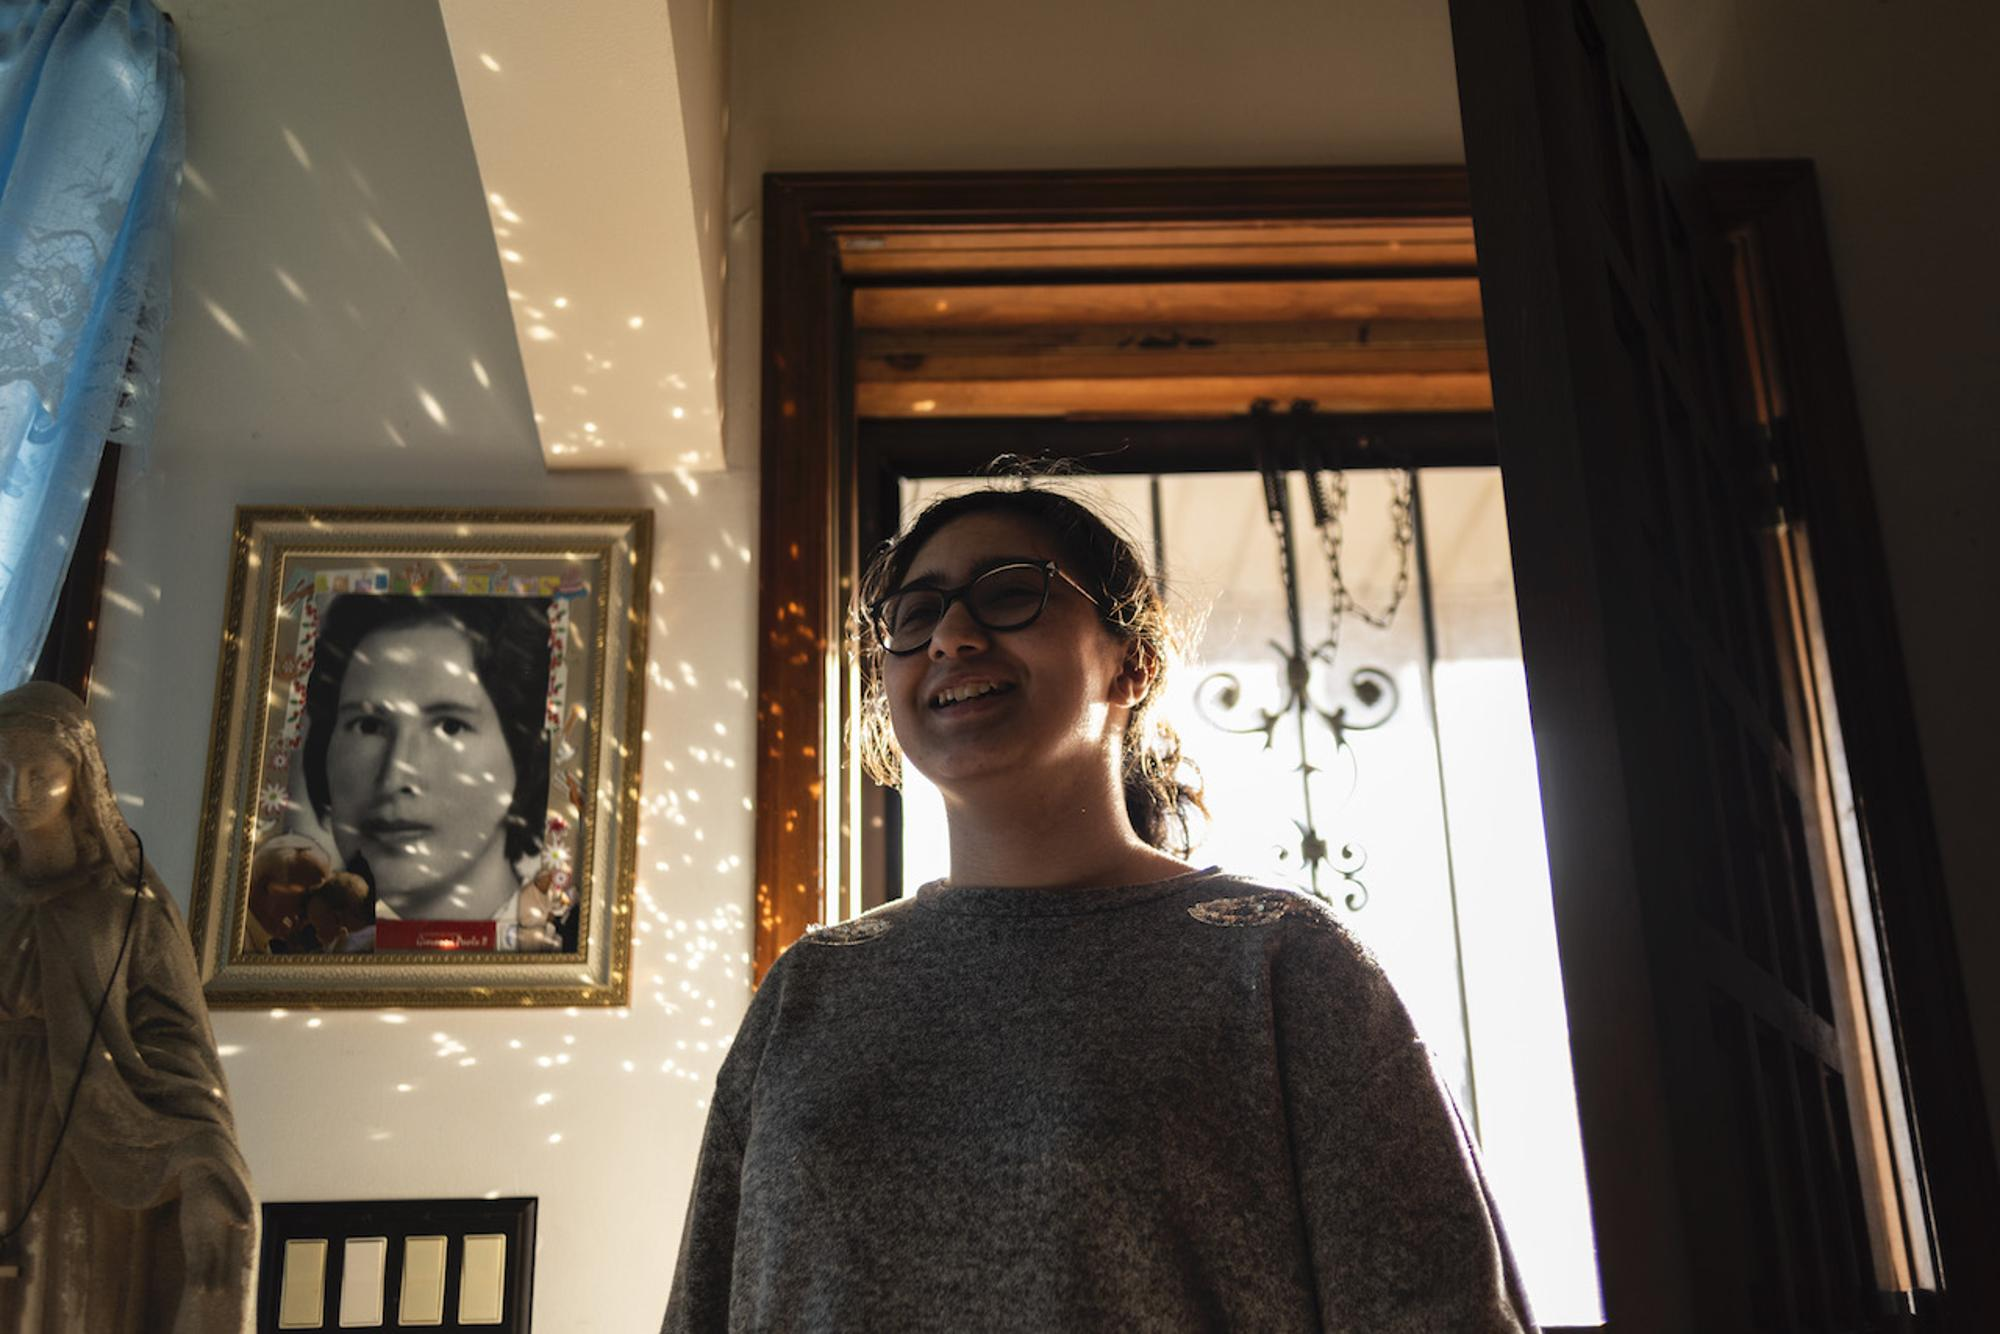 My niece, Margarita, 15, is my older sister's daughter. We've all been spending so much time together and getting to know each other more. Taken by Rosa María Zamarrón for WDET